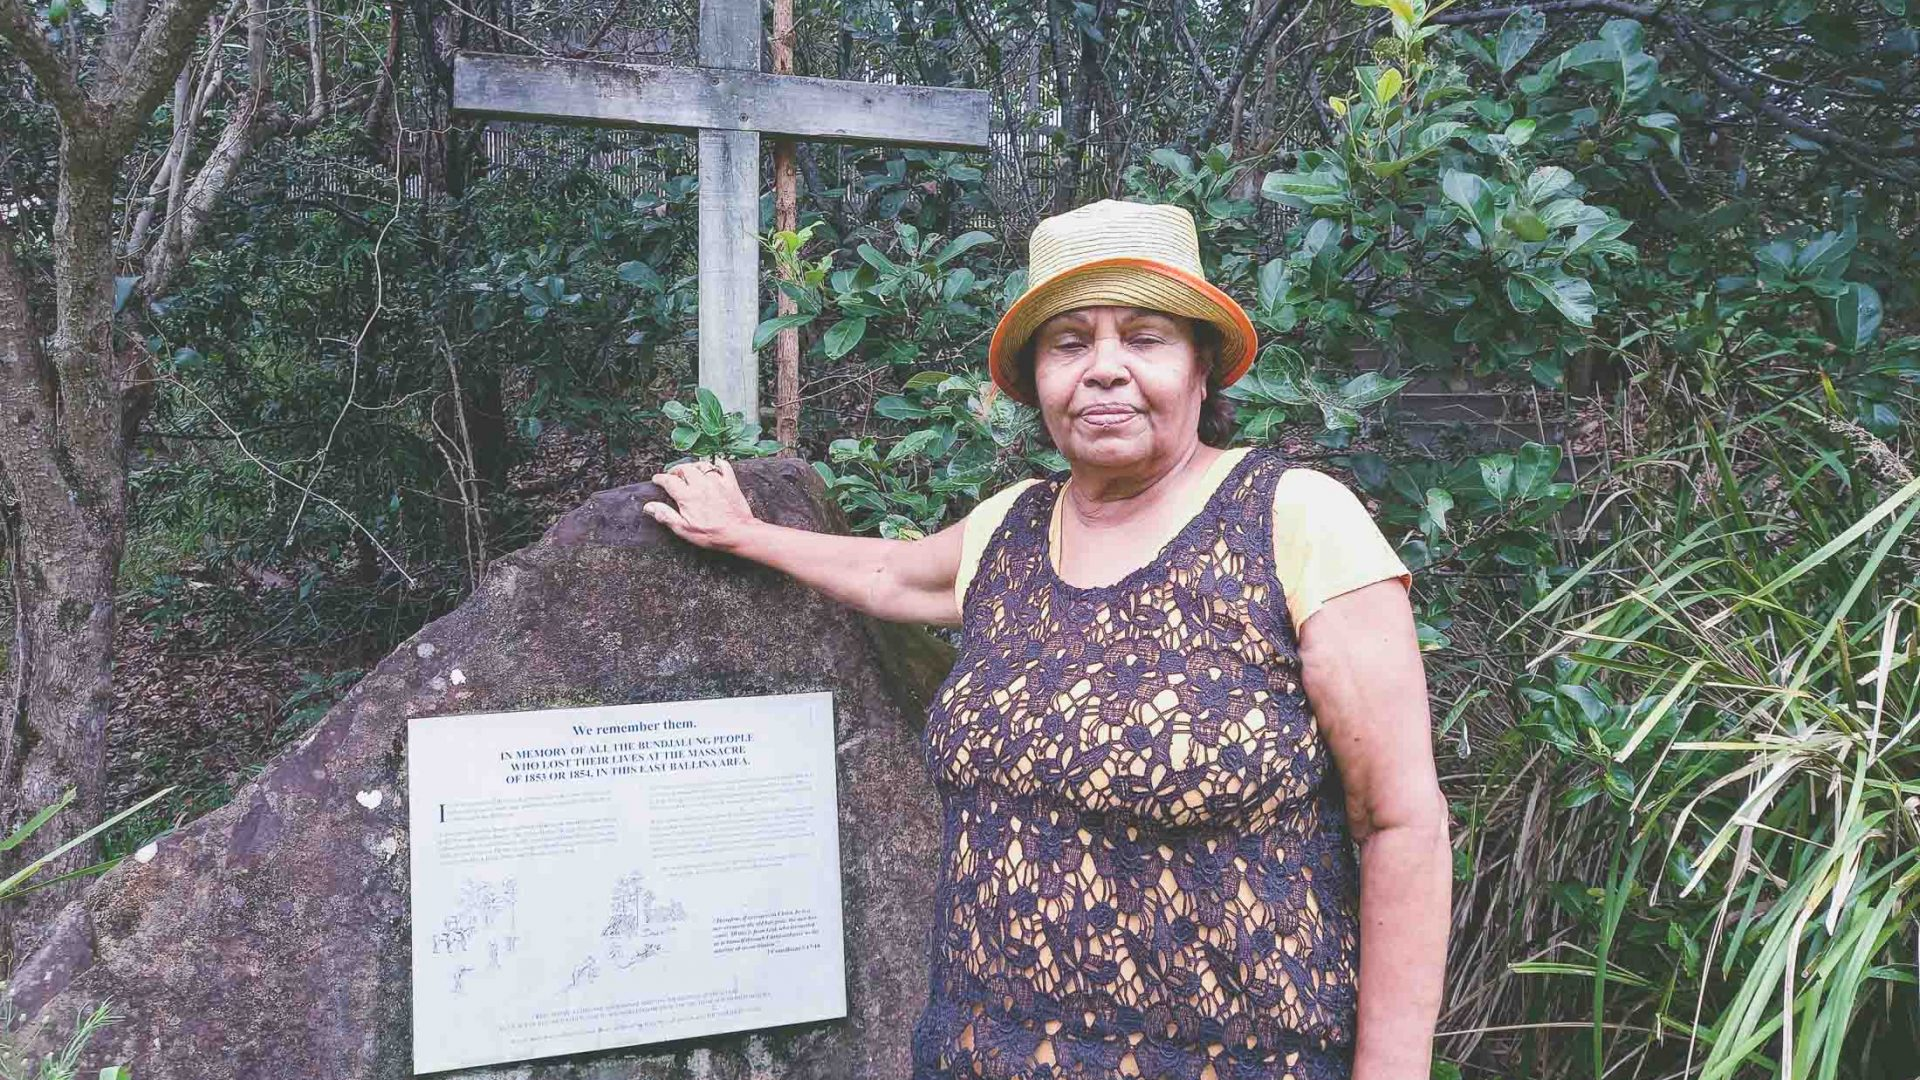 Aunty Lois at a site remembering Indigenous people who lost their lives in a massacre. who